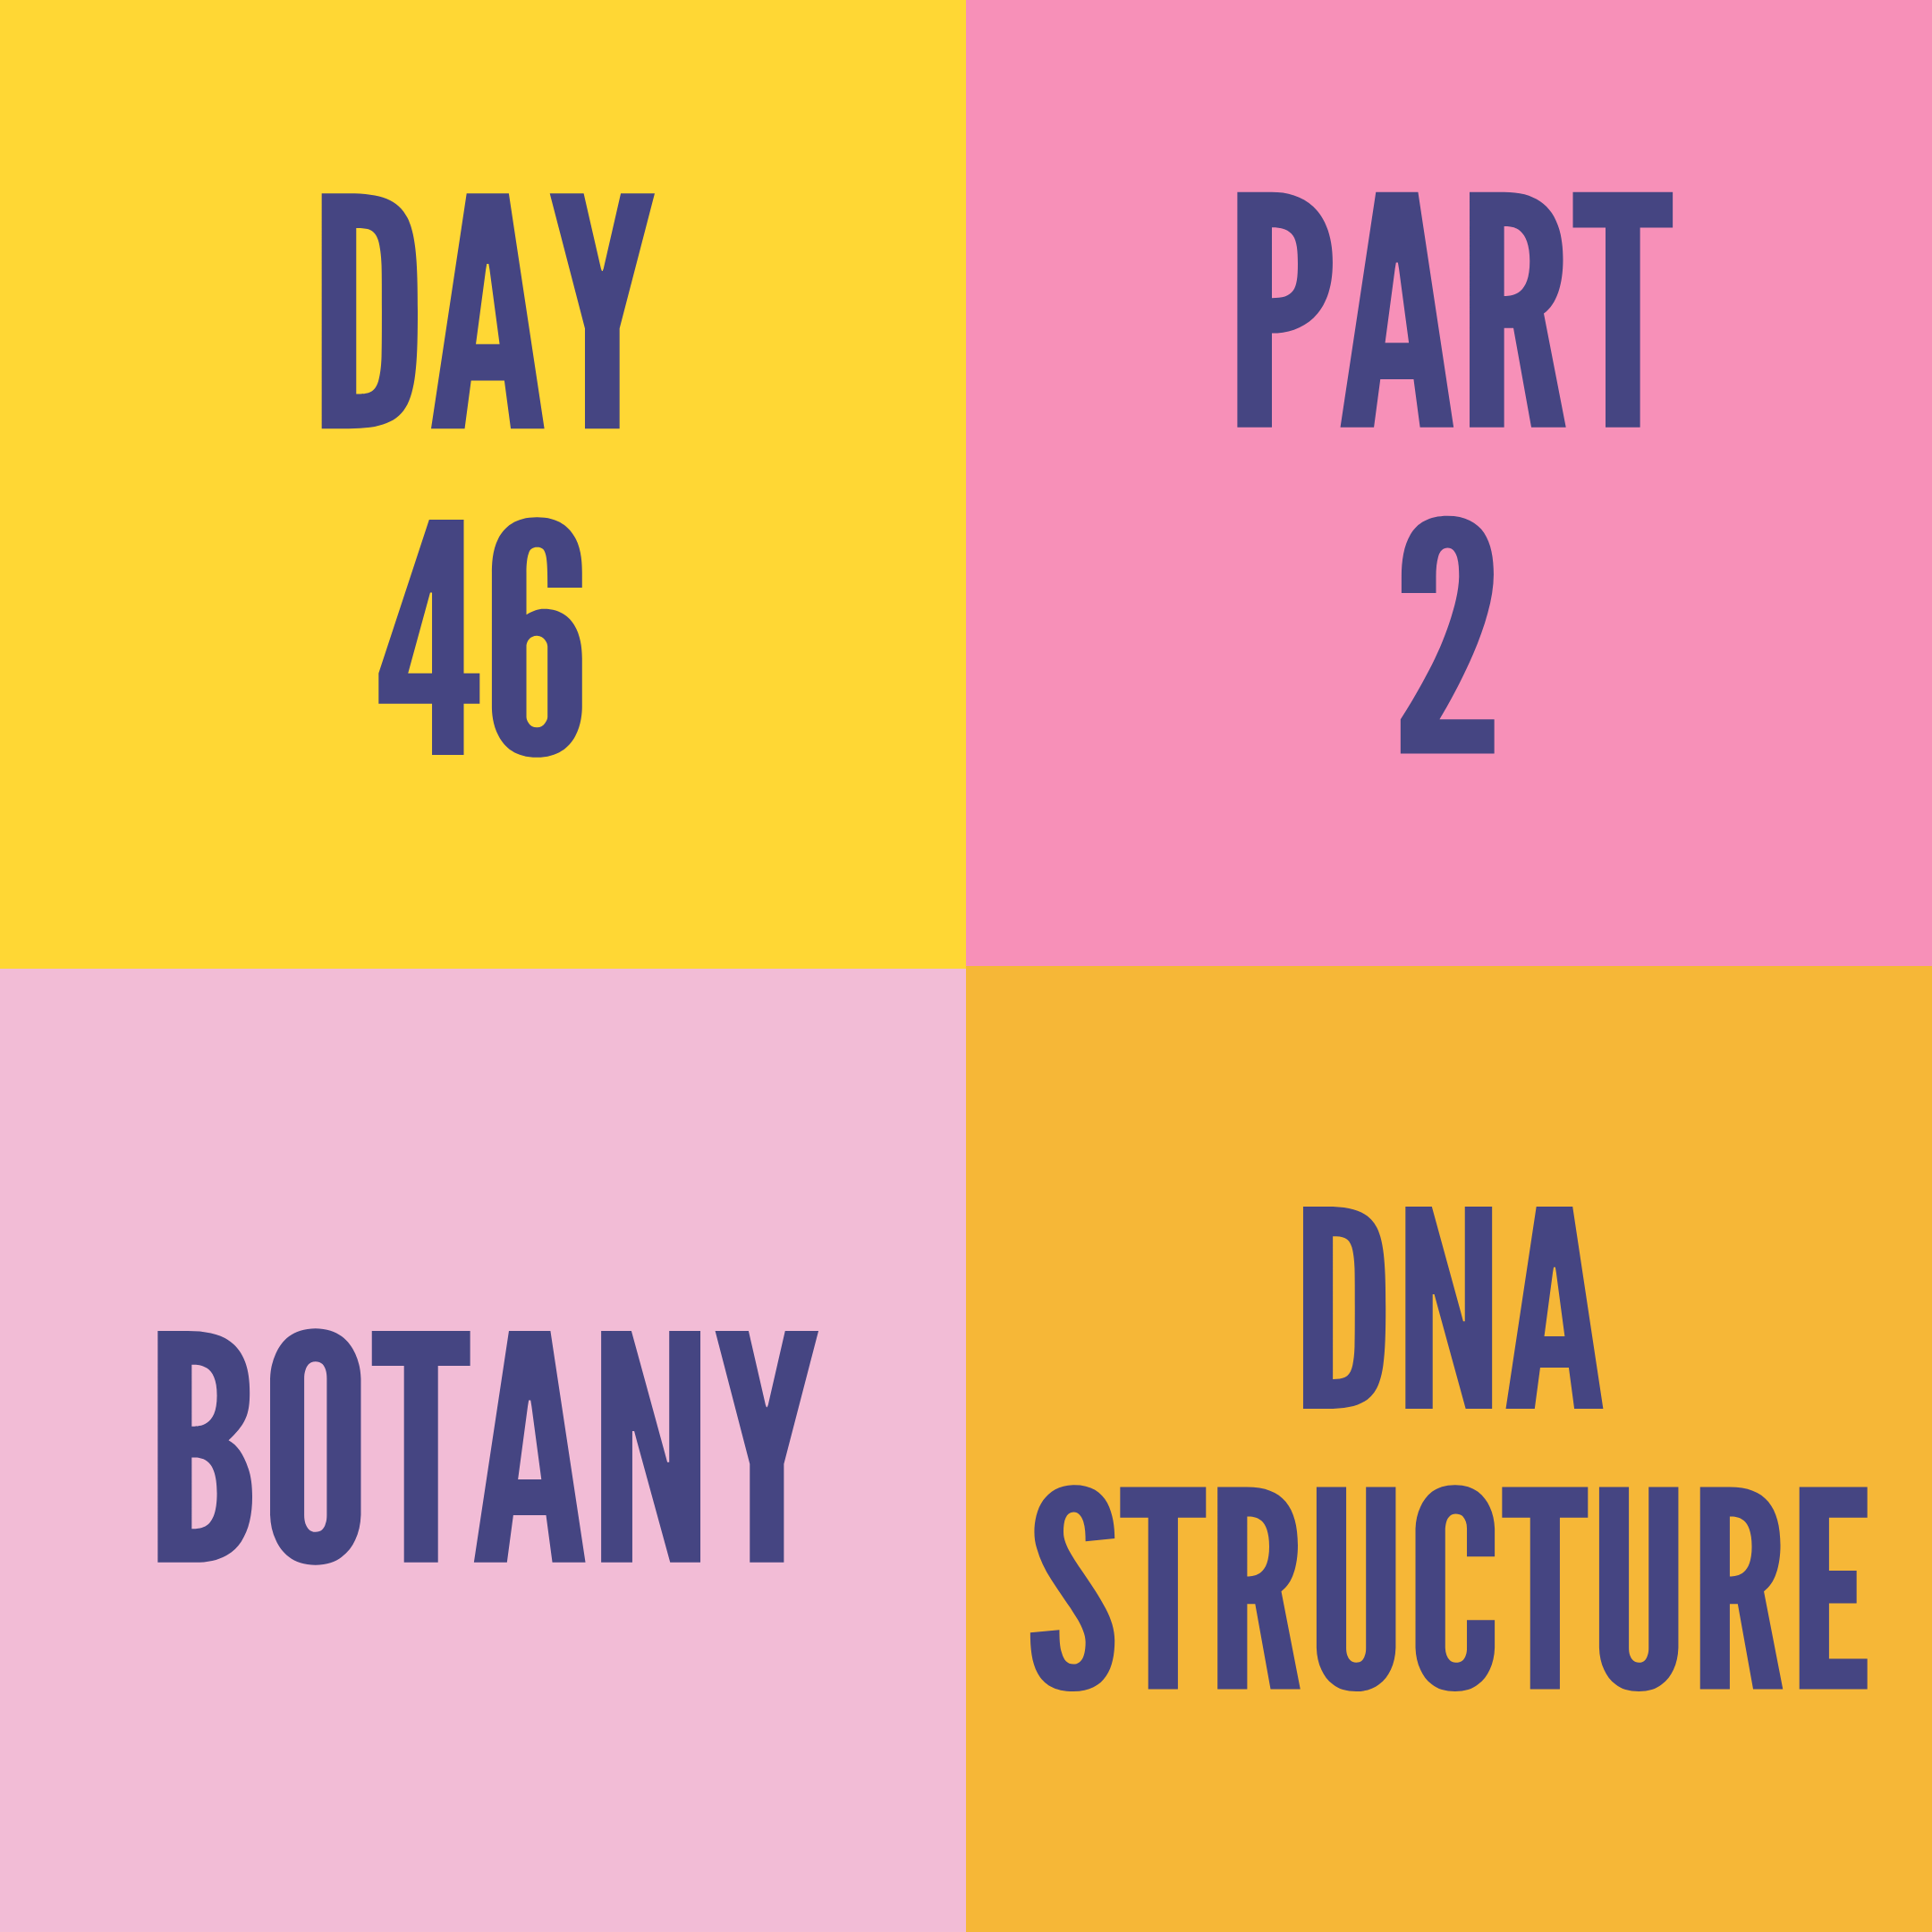 DAY-46 PART-2 DNA STRUCTURE